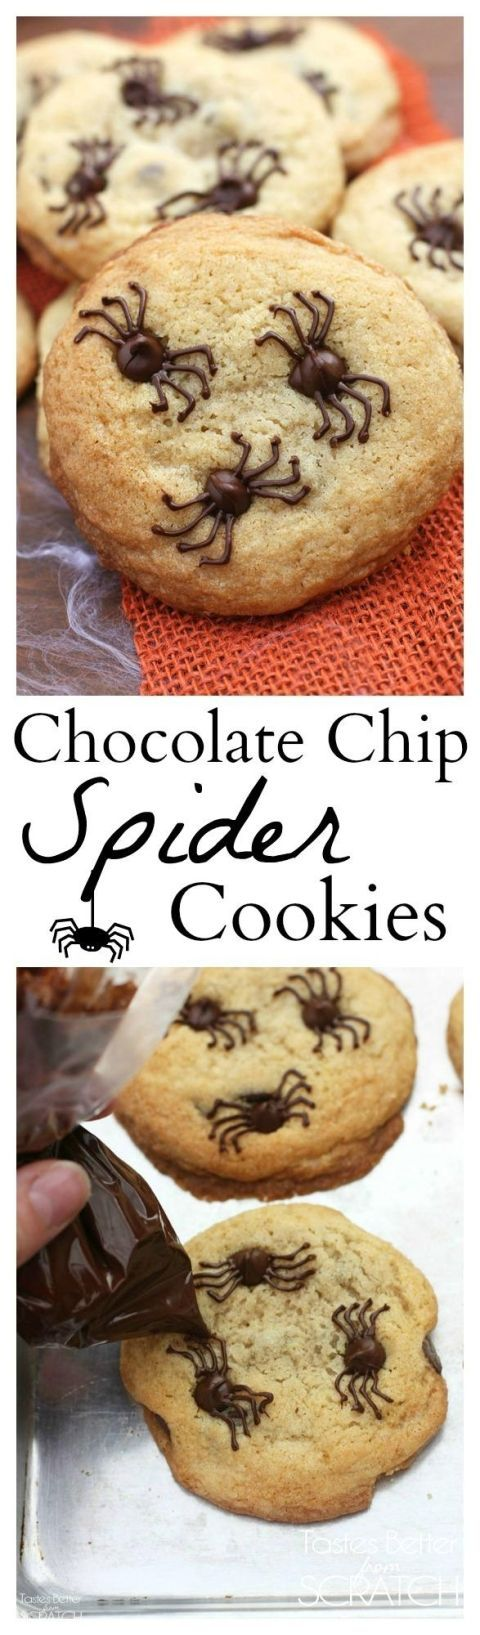 Chocolate Chip Spider Cookies make the perfect fun and easy Halloween treat…